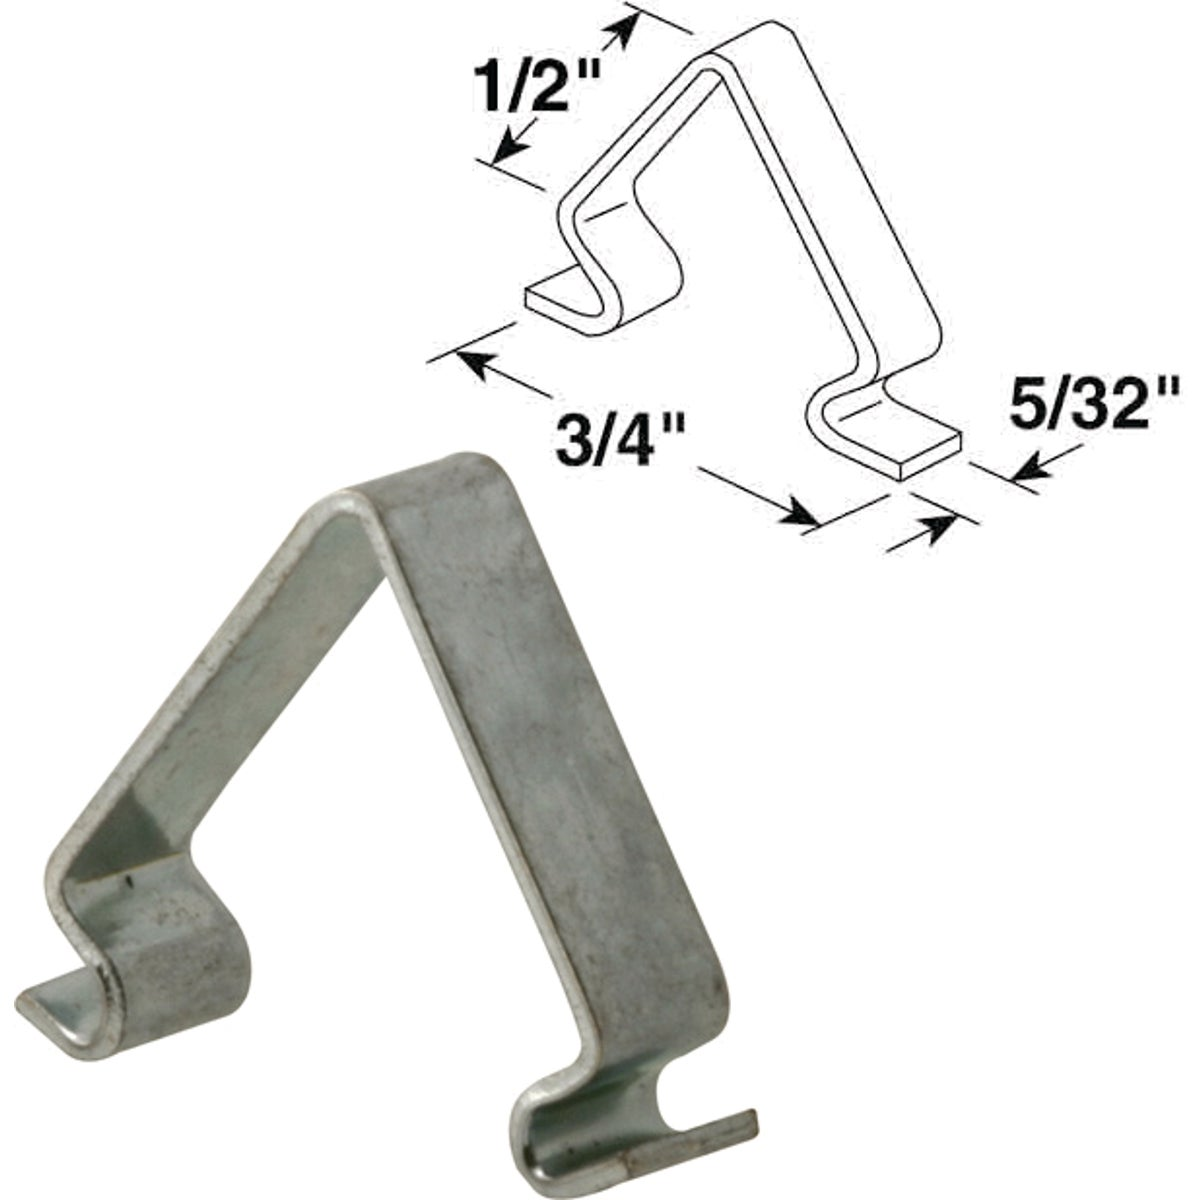 1/2X3/4X5/32 INSERT CLIP - PL14863 by Prime Line Products